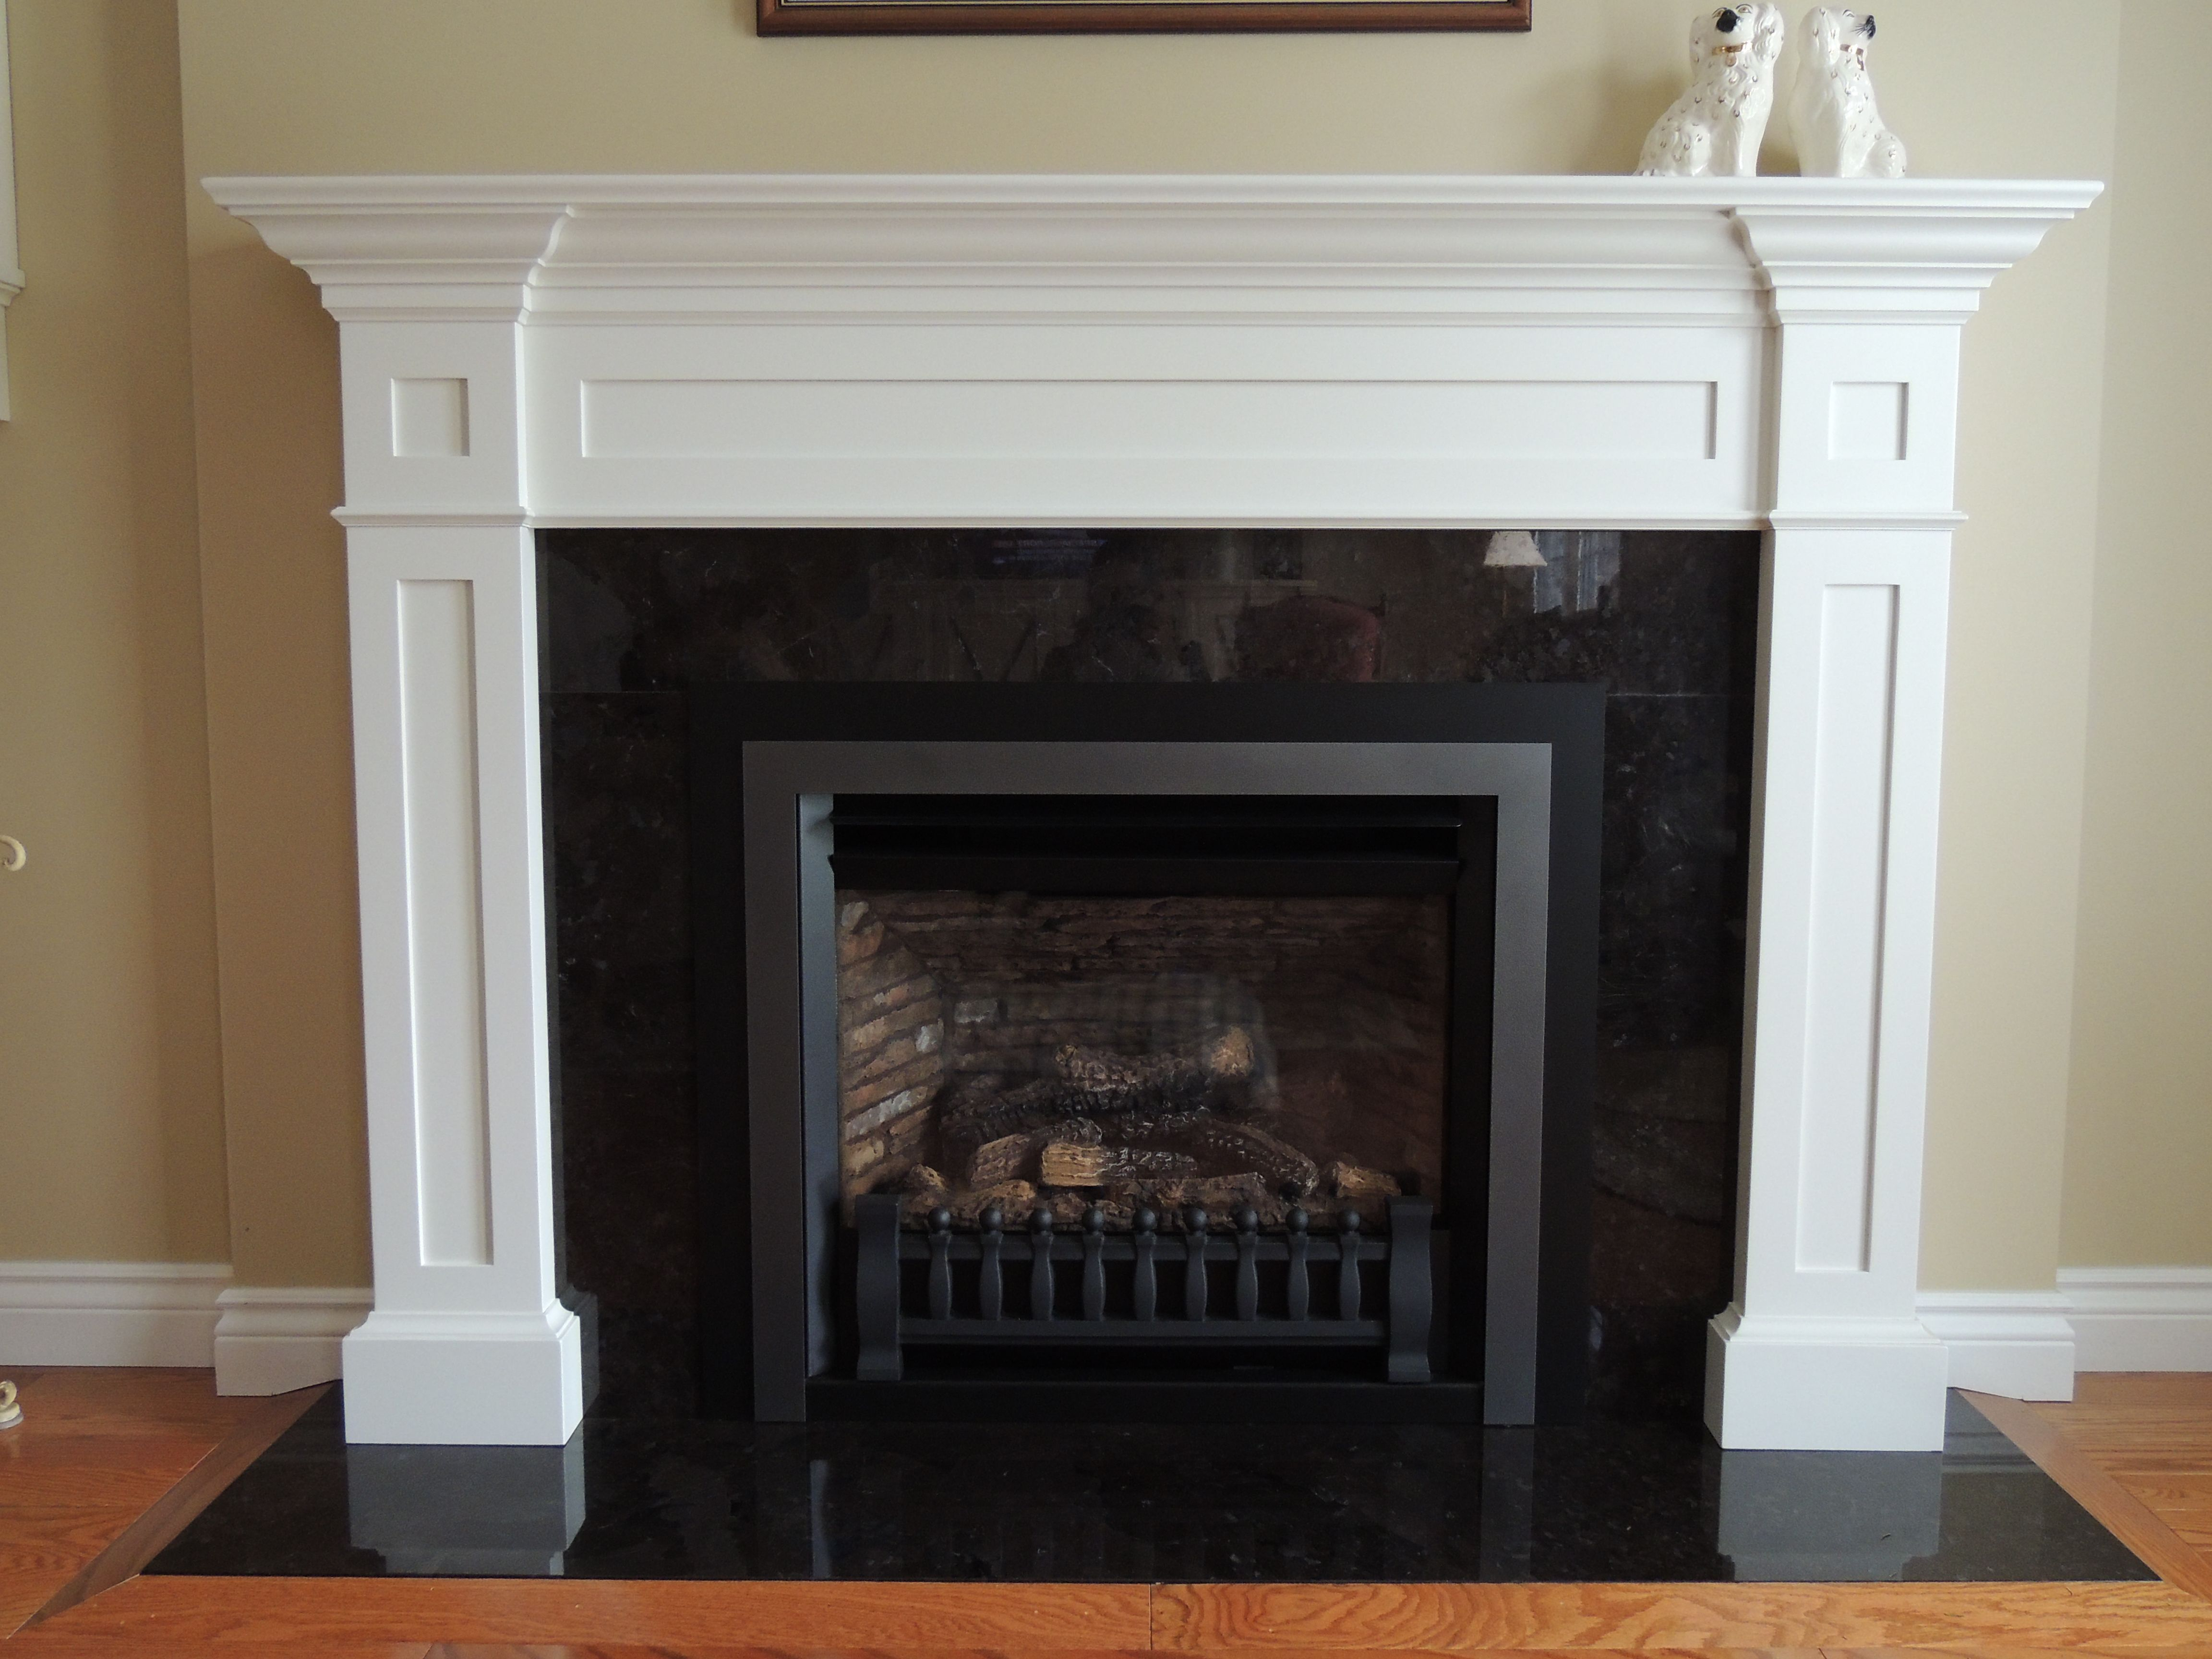 st fireplace granite minneapolis request on c quote surrounds a soapstone paul d surround